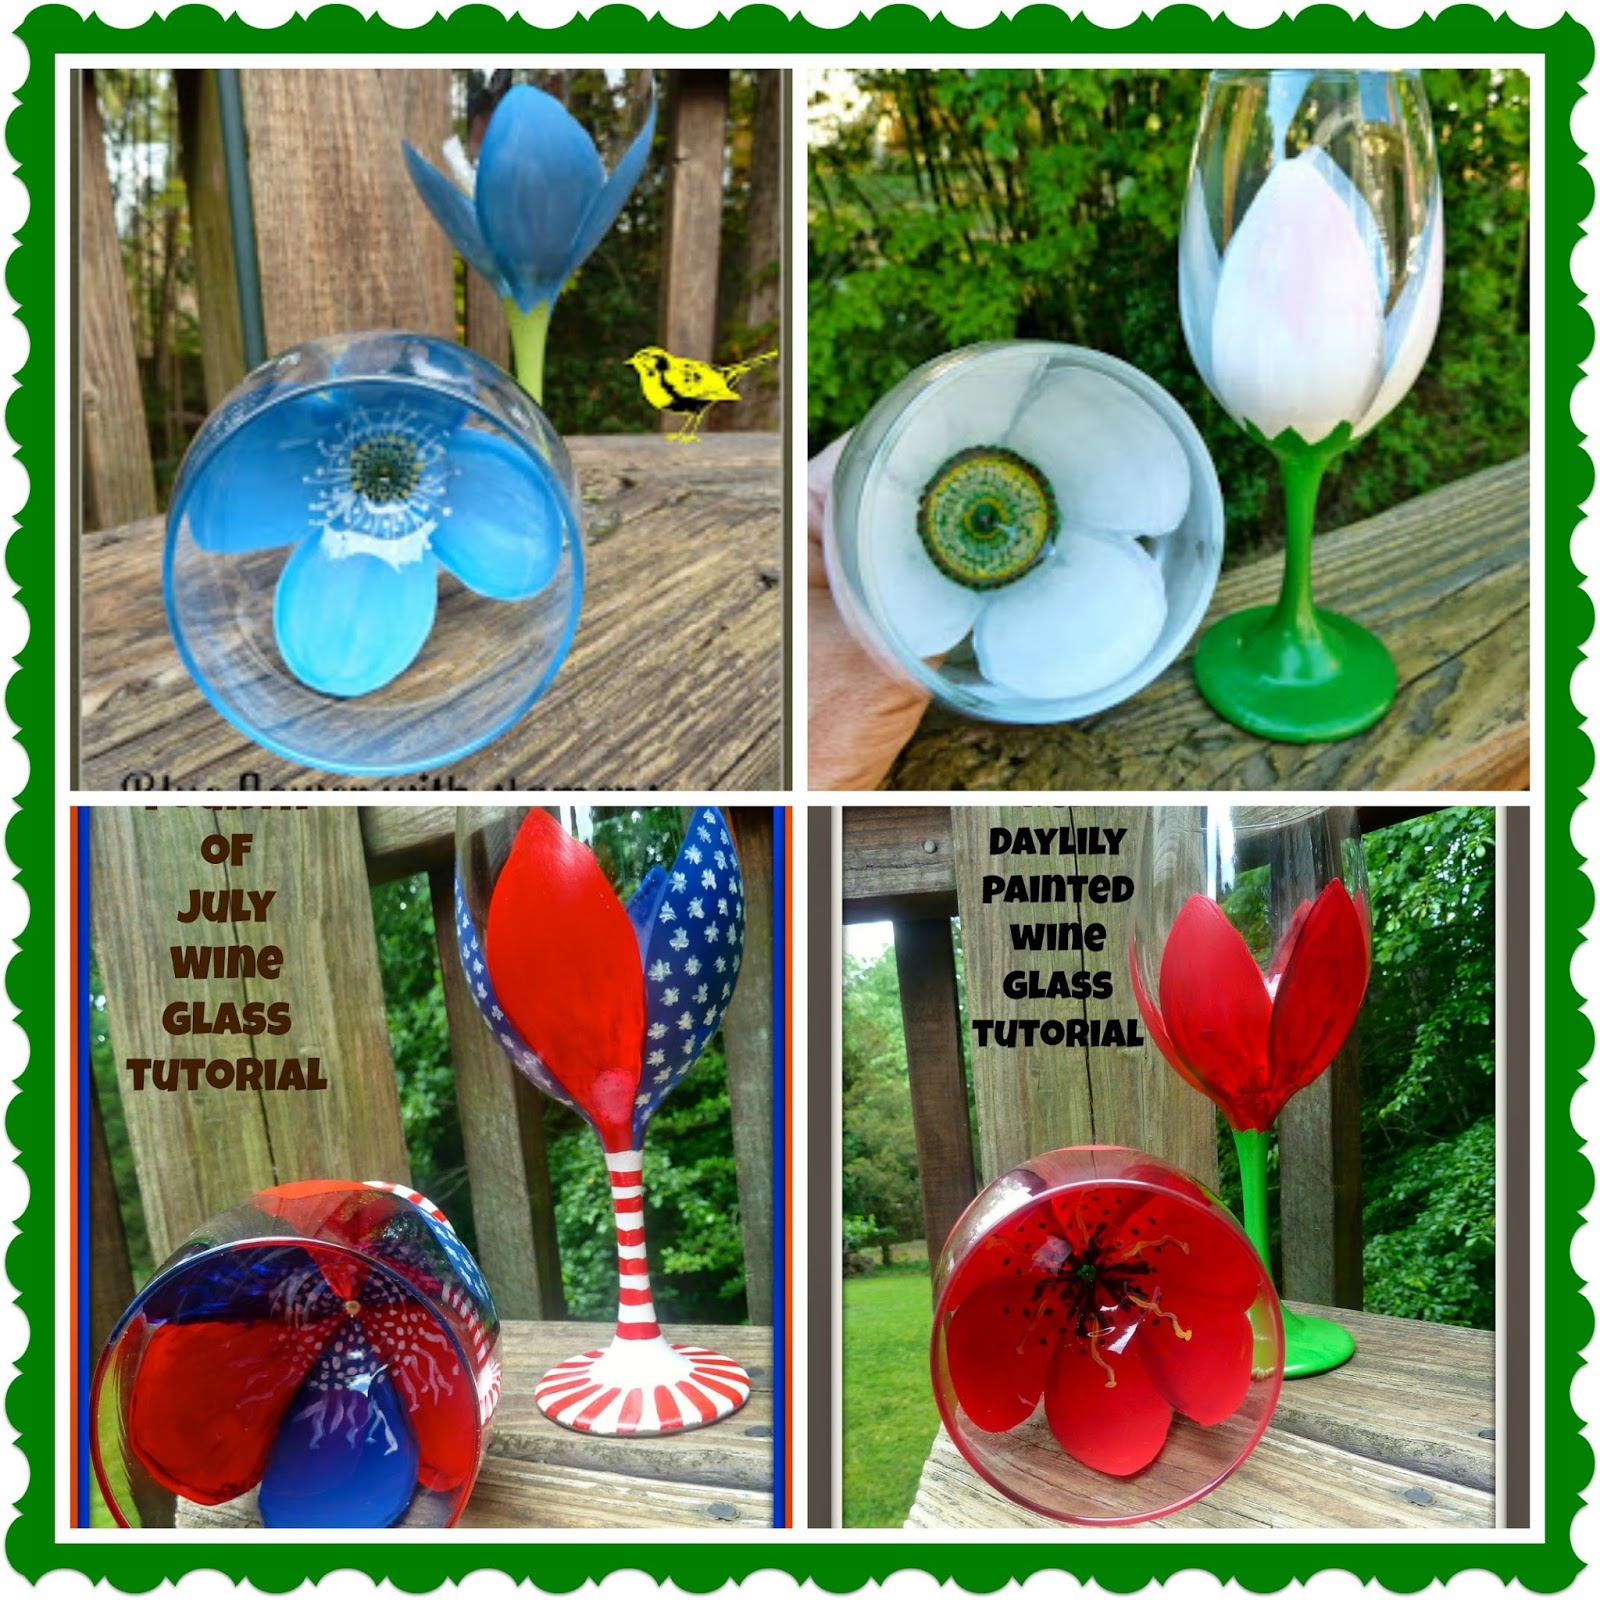 Make it easy crafts 4 painted wine glass tutorials for Wine glass painting tutorial